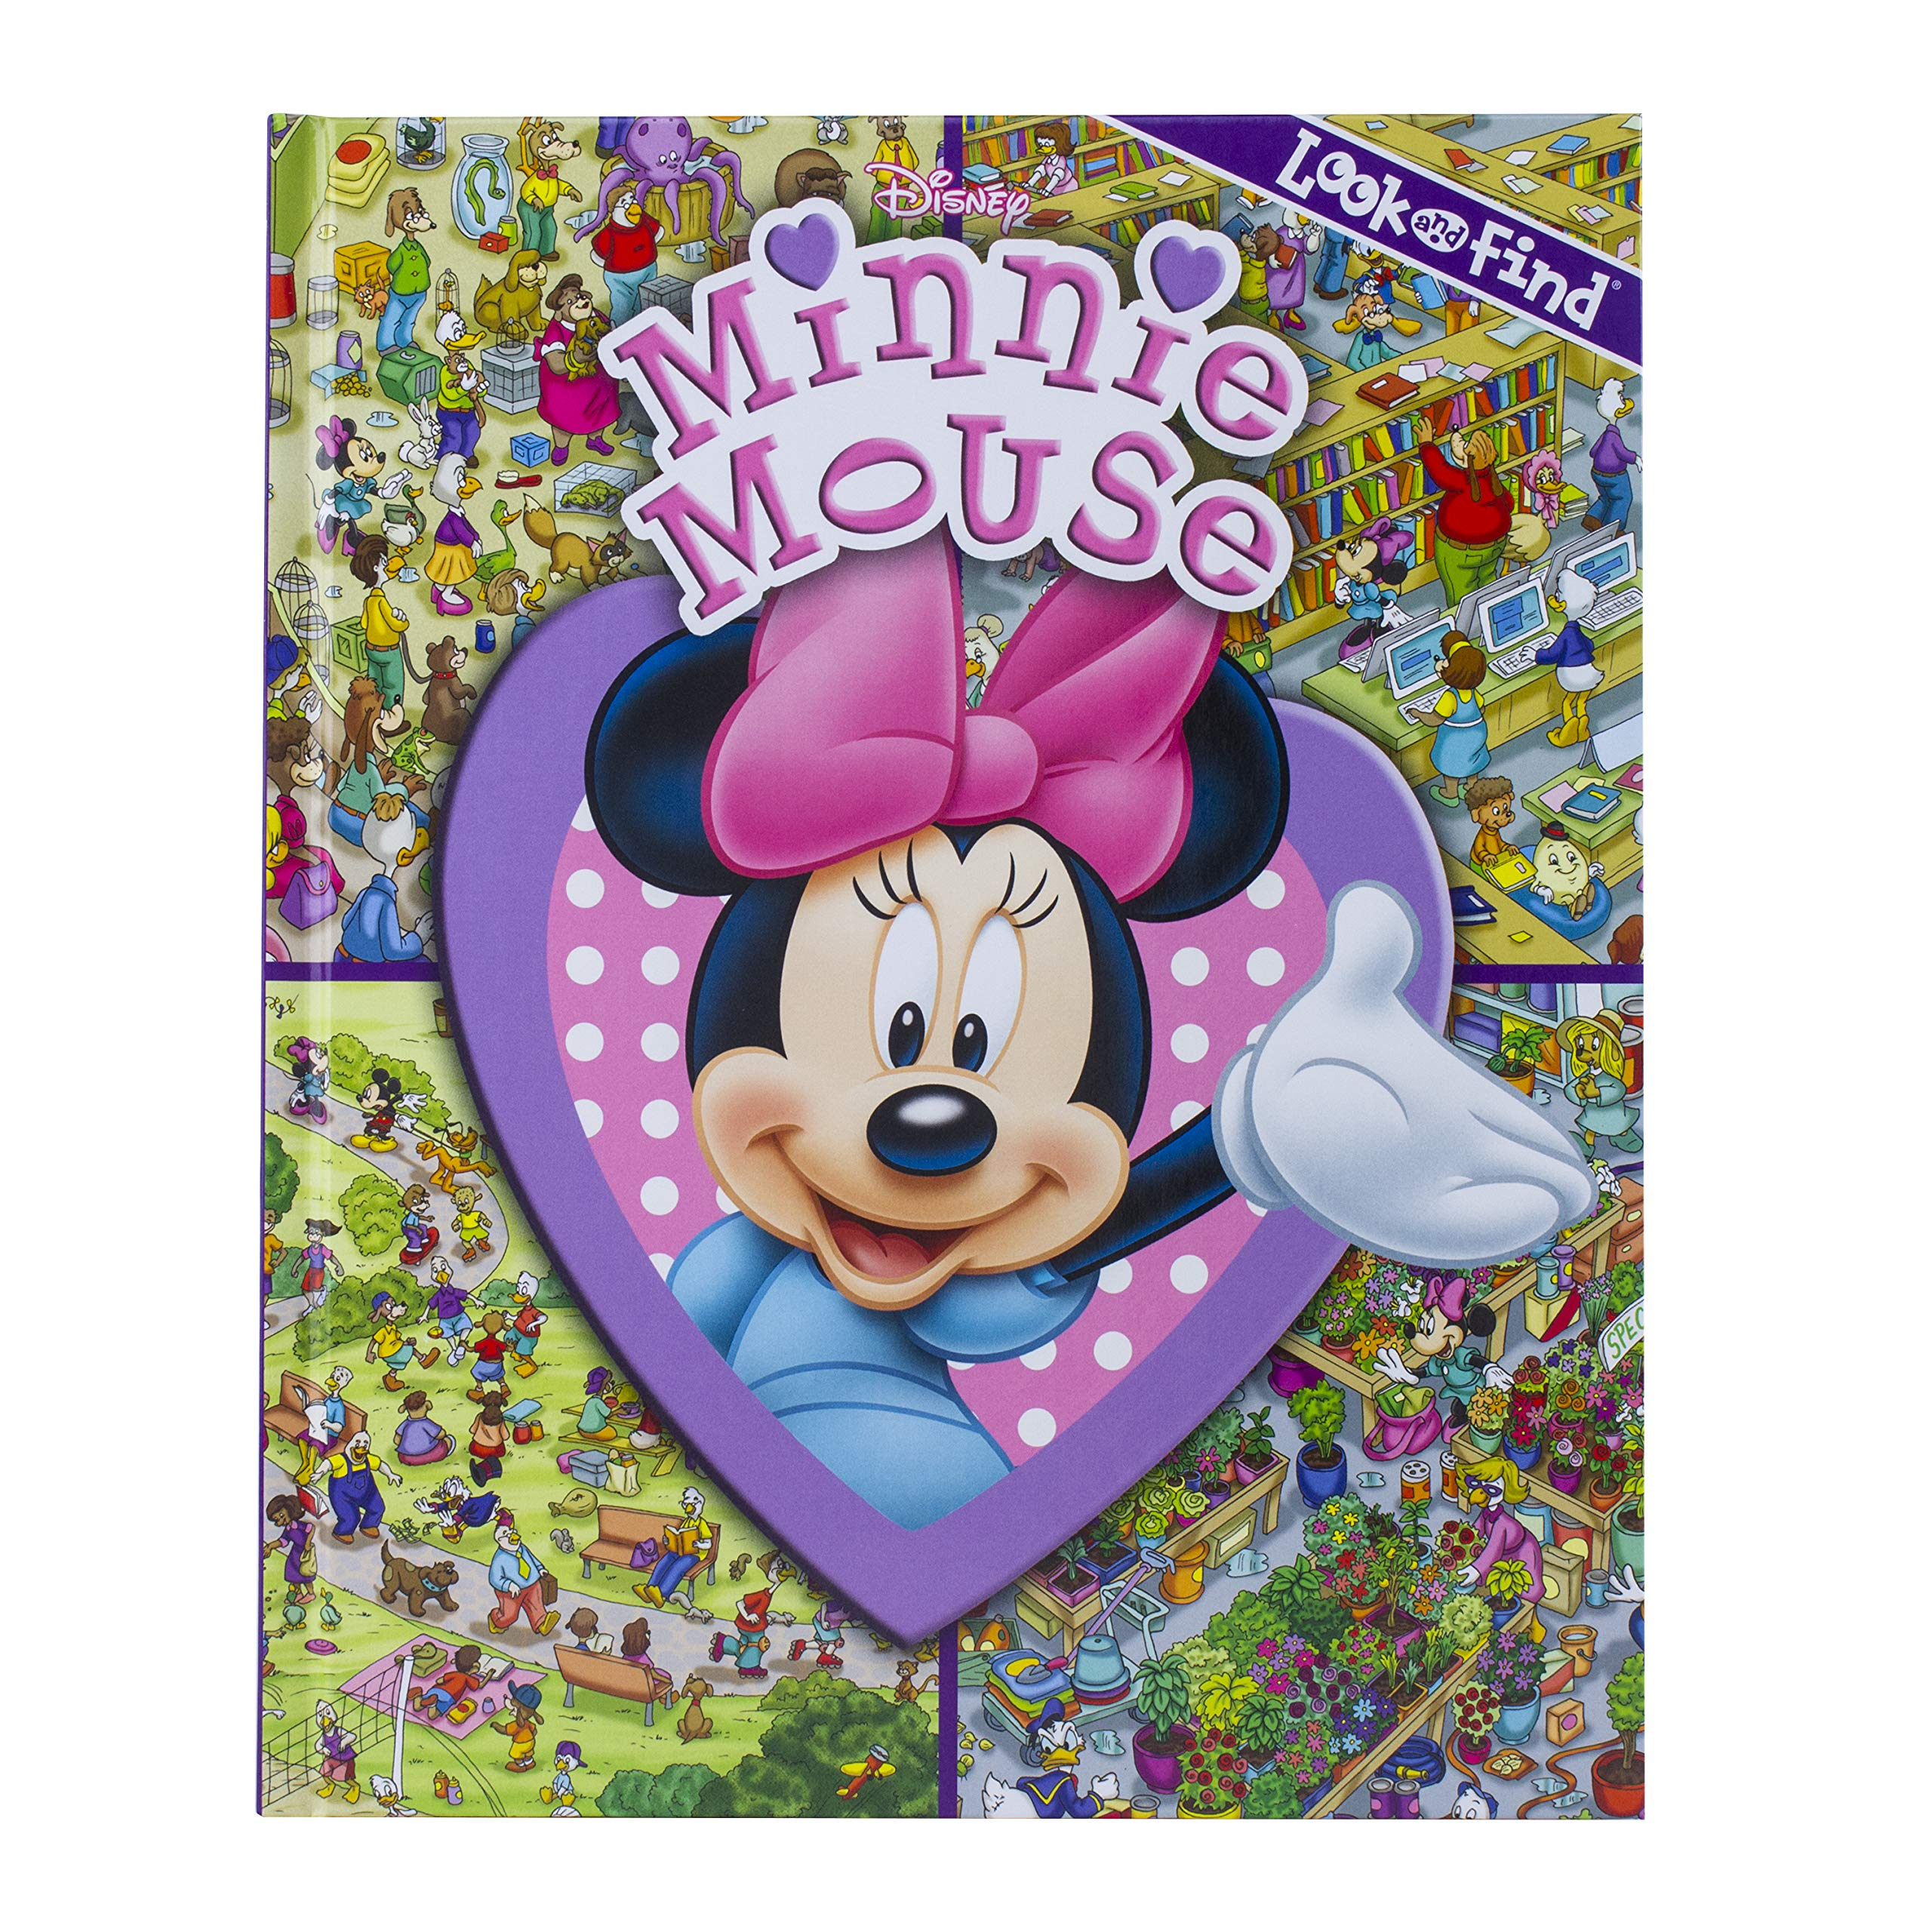 Download Disney Minnie Mouse - Look and Find - PI Kids pdf